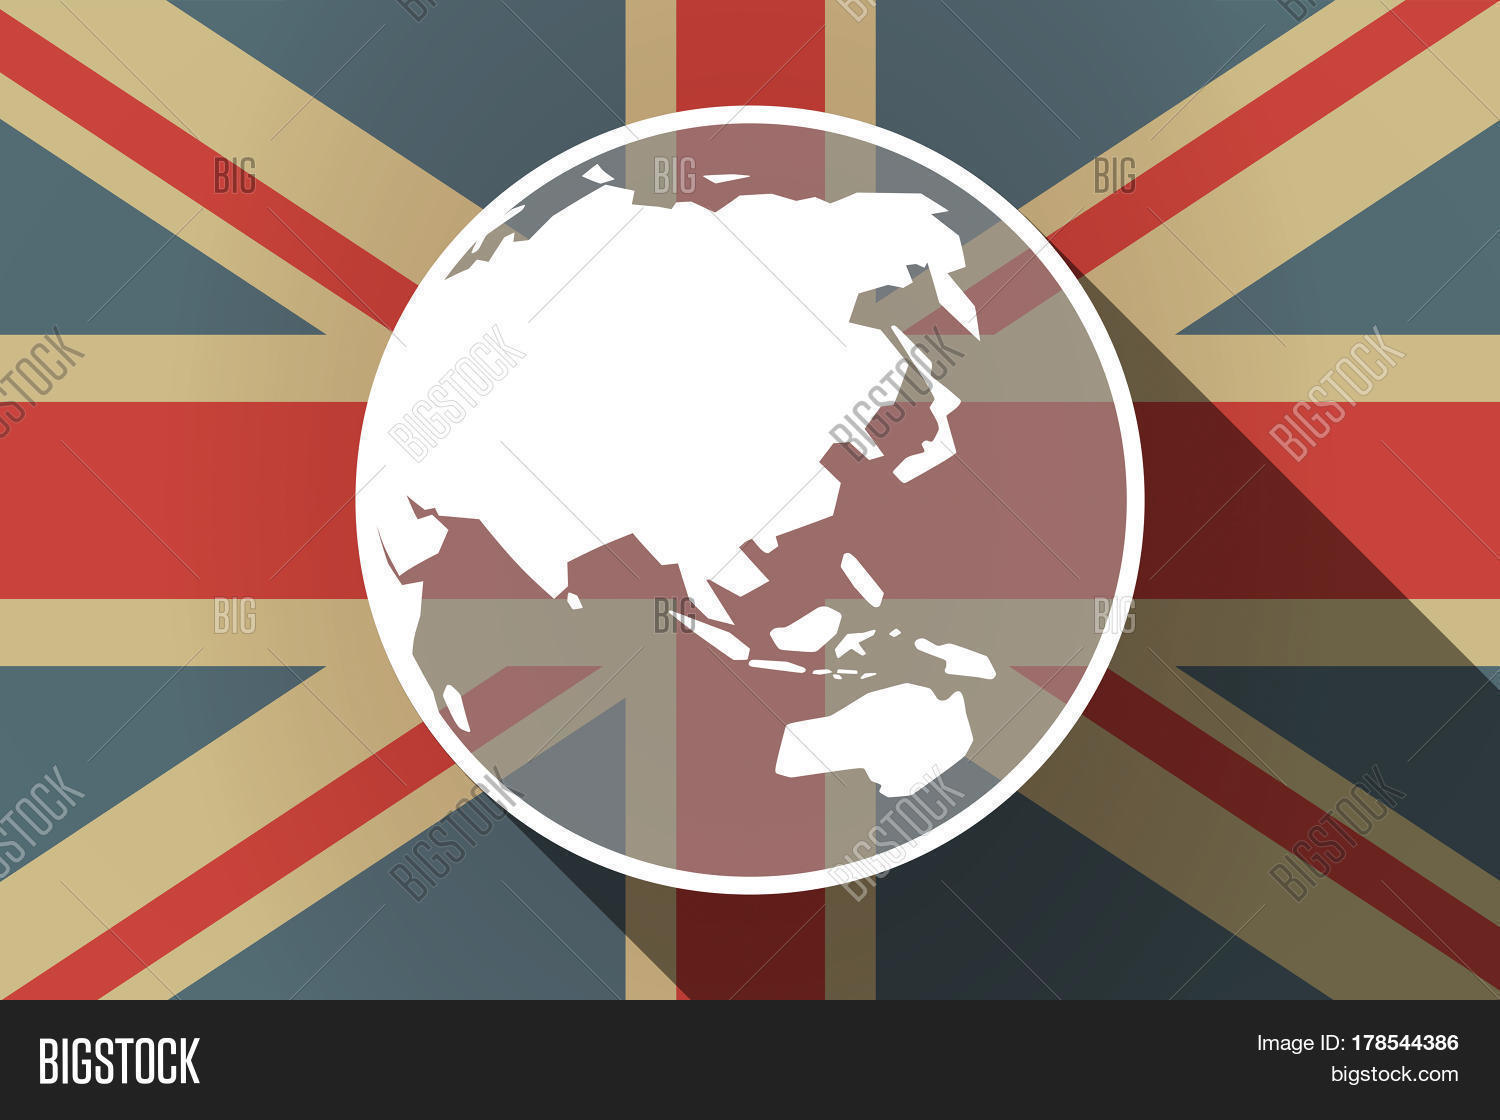 Long shadow uk flag vector photo free trial bigstock long shadow uk flag with an asia pacific world globe map gumiabroncs Image collections